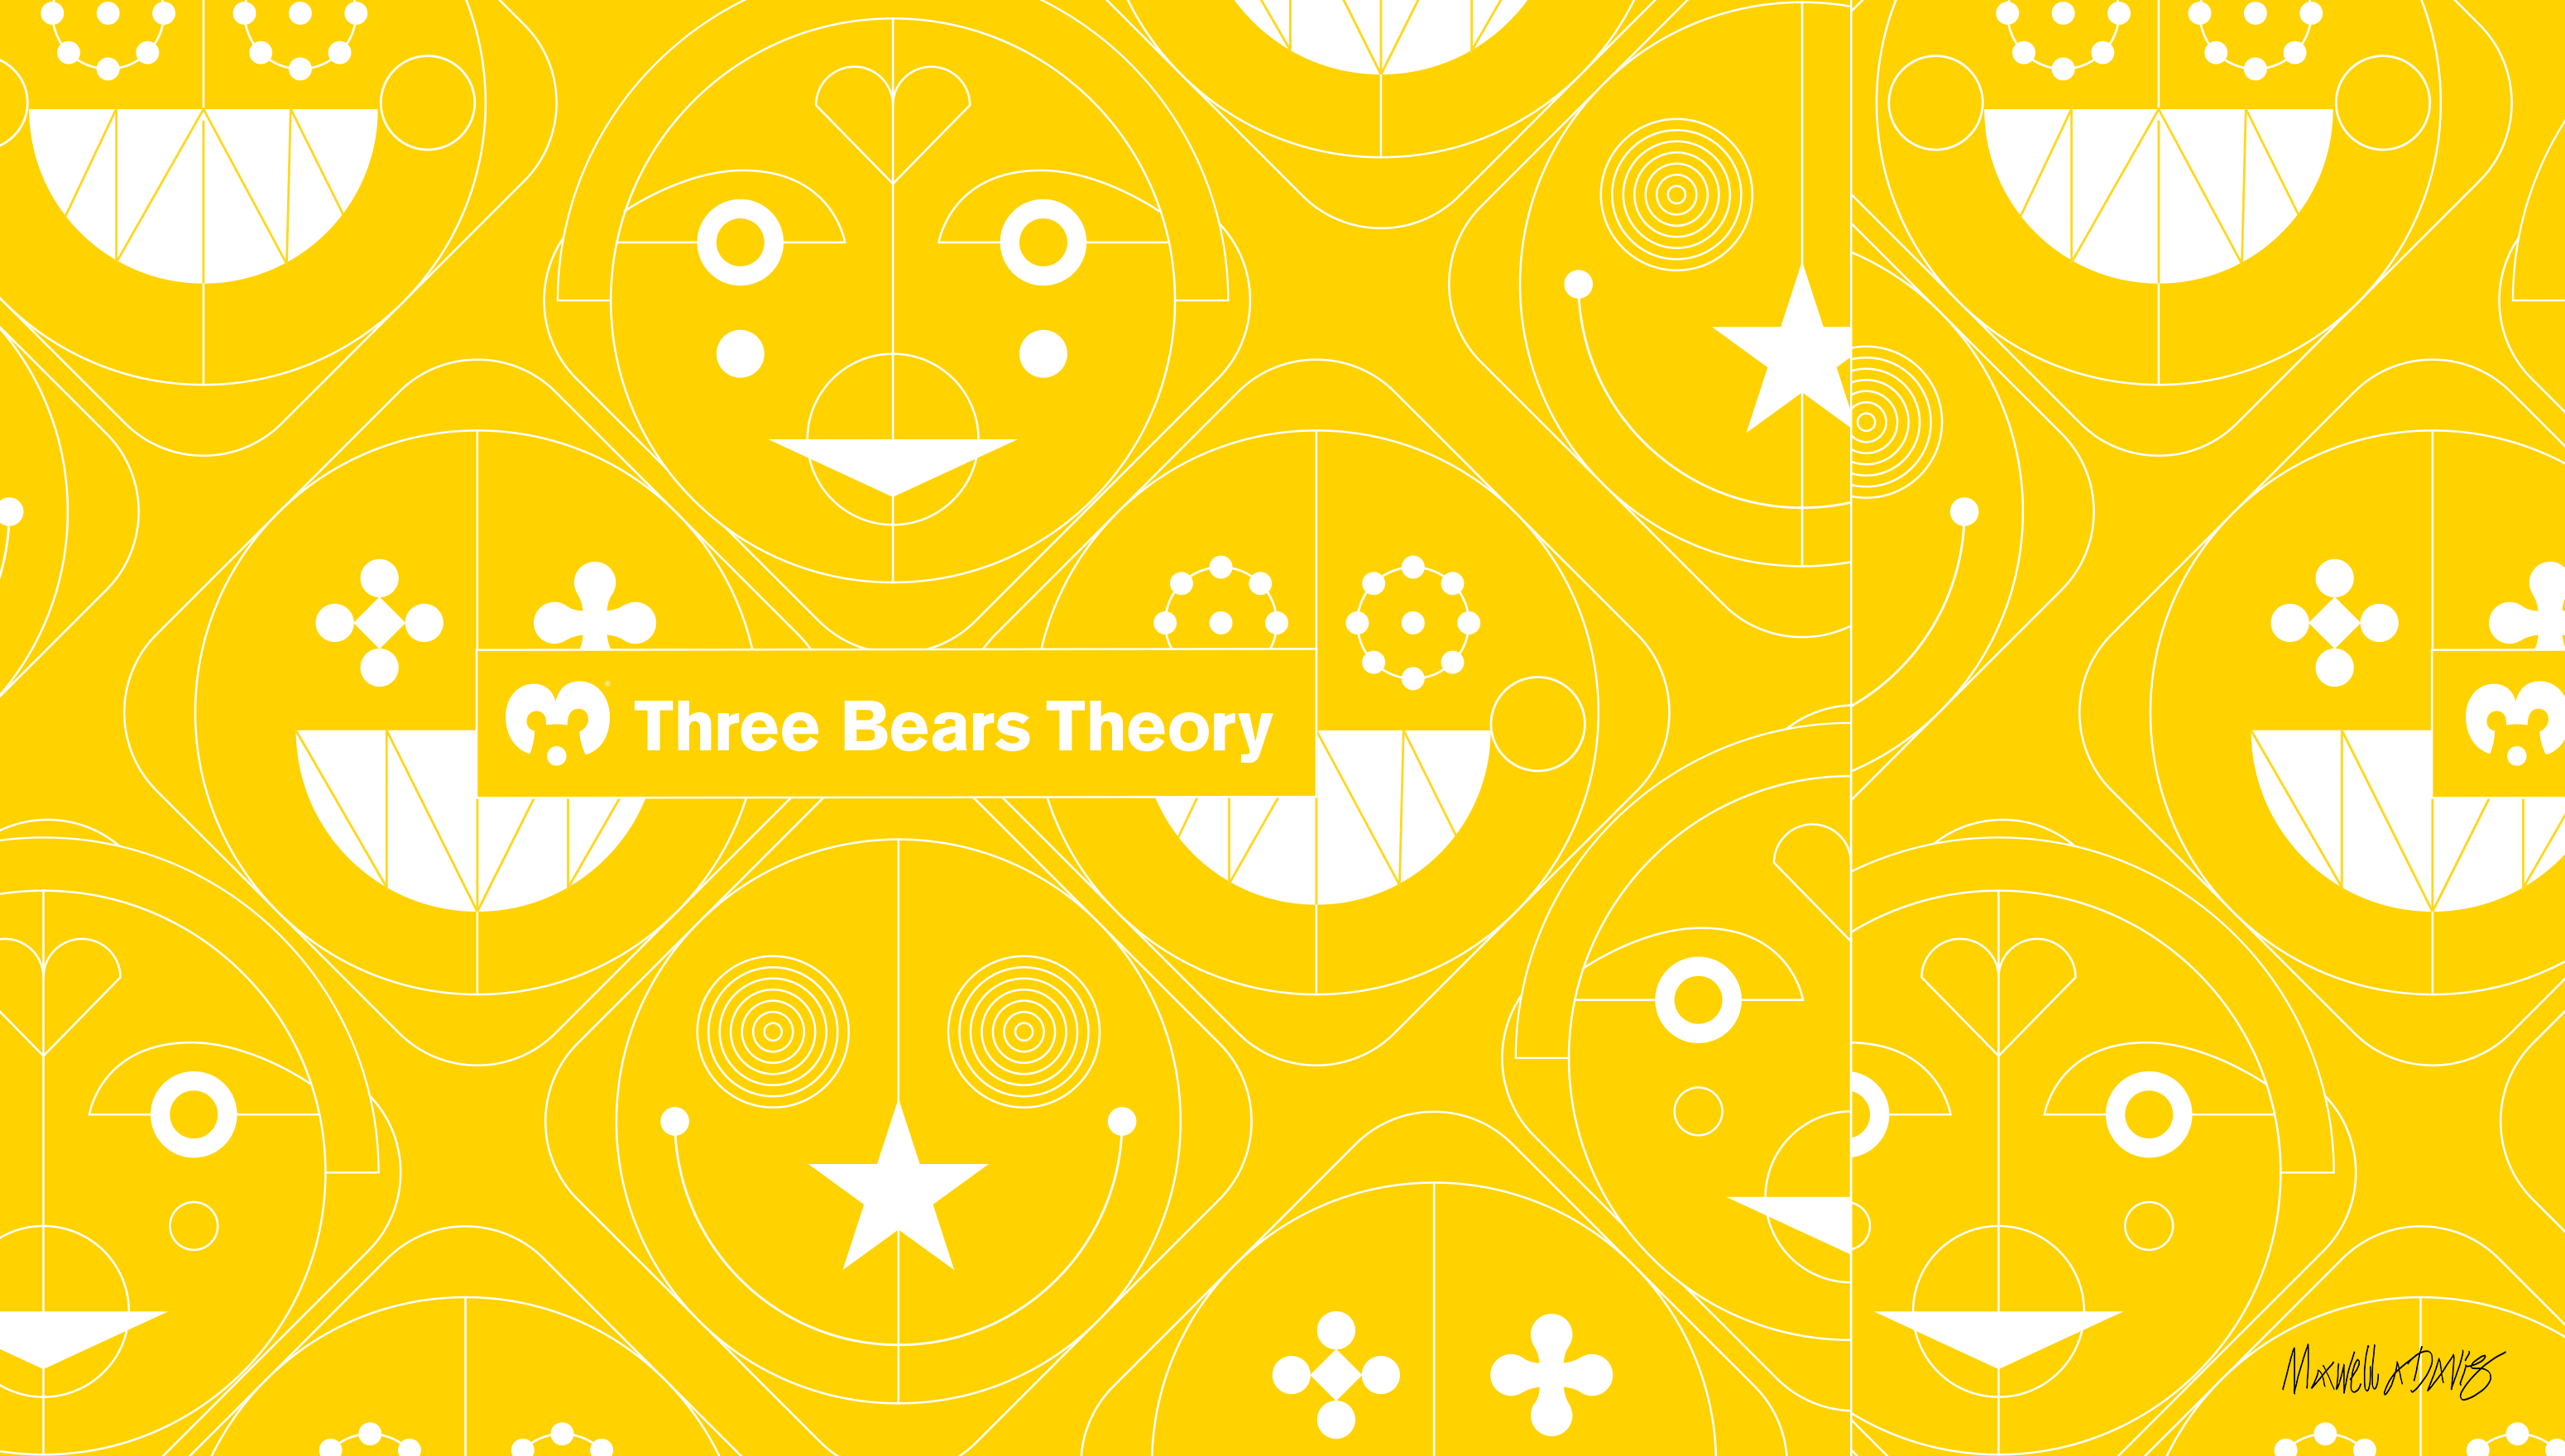 brand strategy, visual identity and motion design, studio three bears theory (studiotbt)